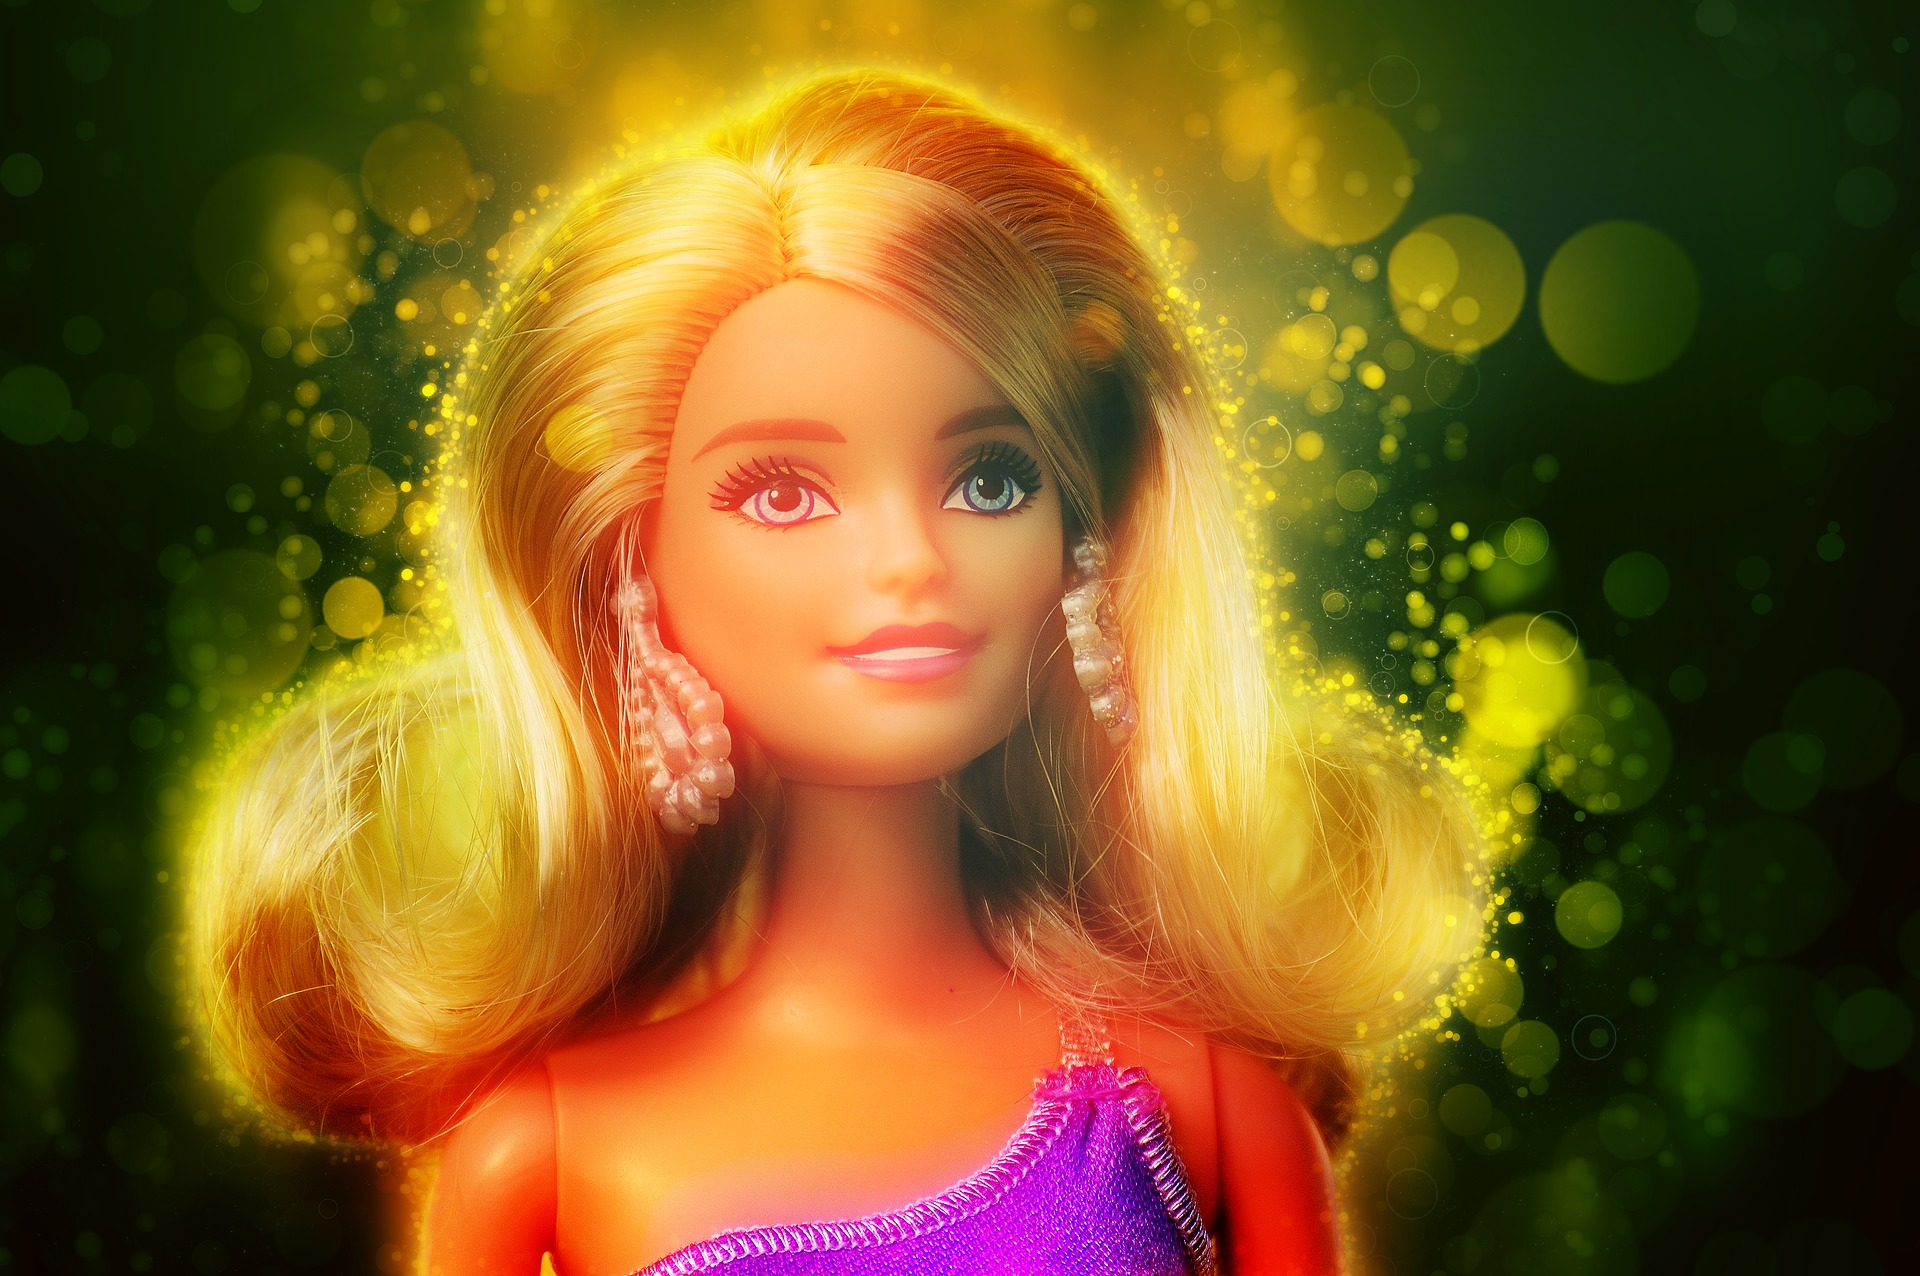 Barbie's New Look And Body Image